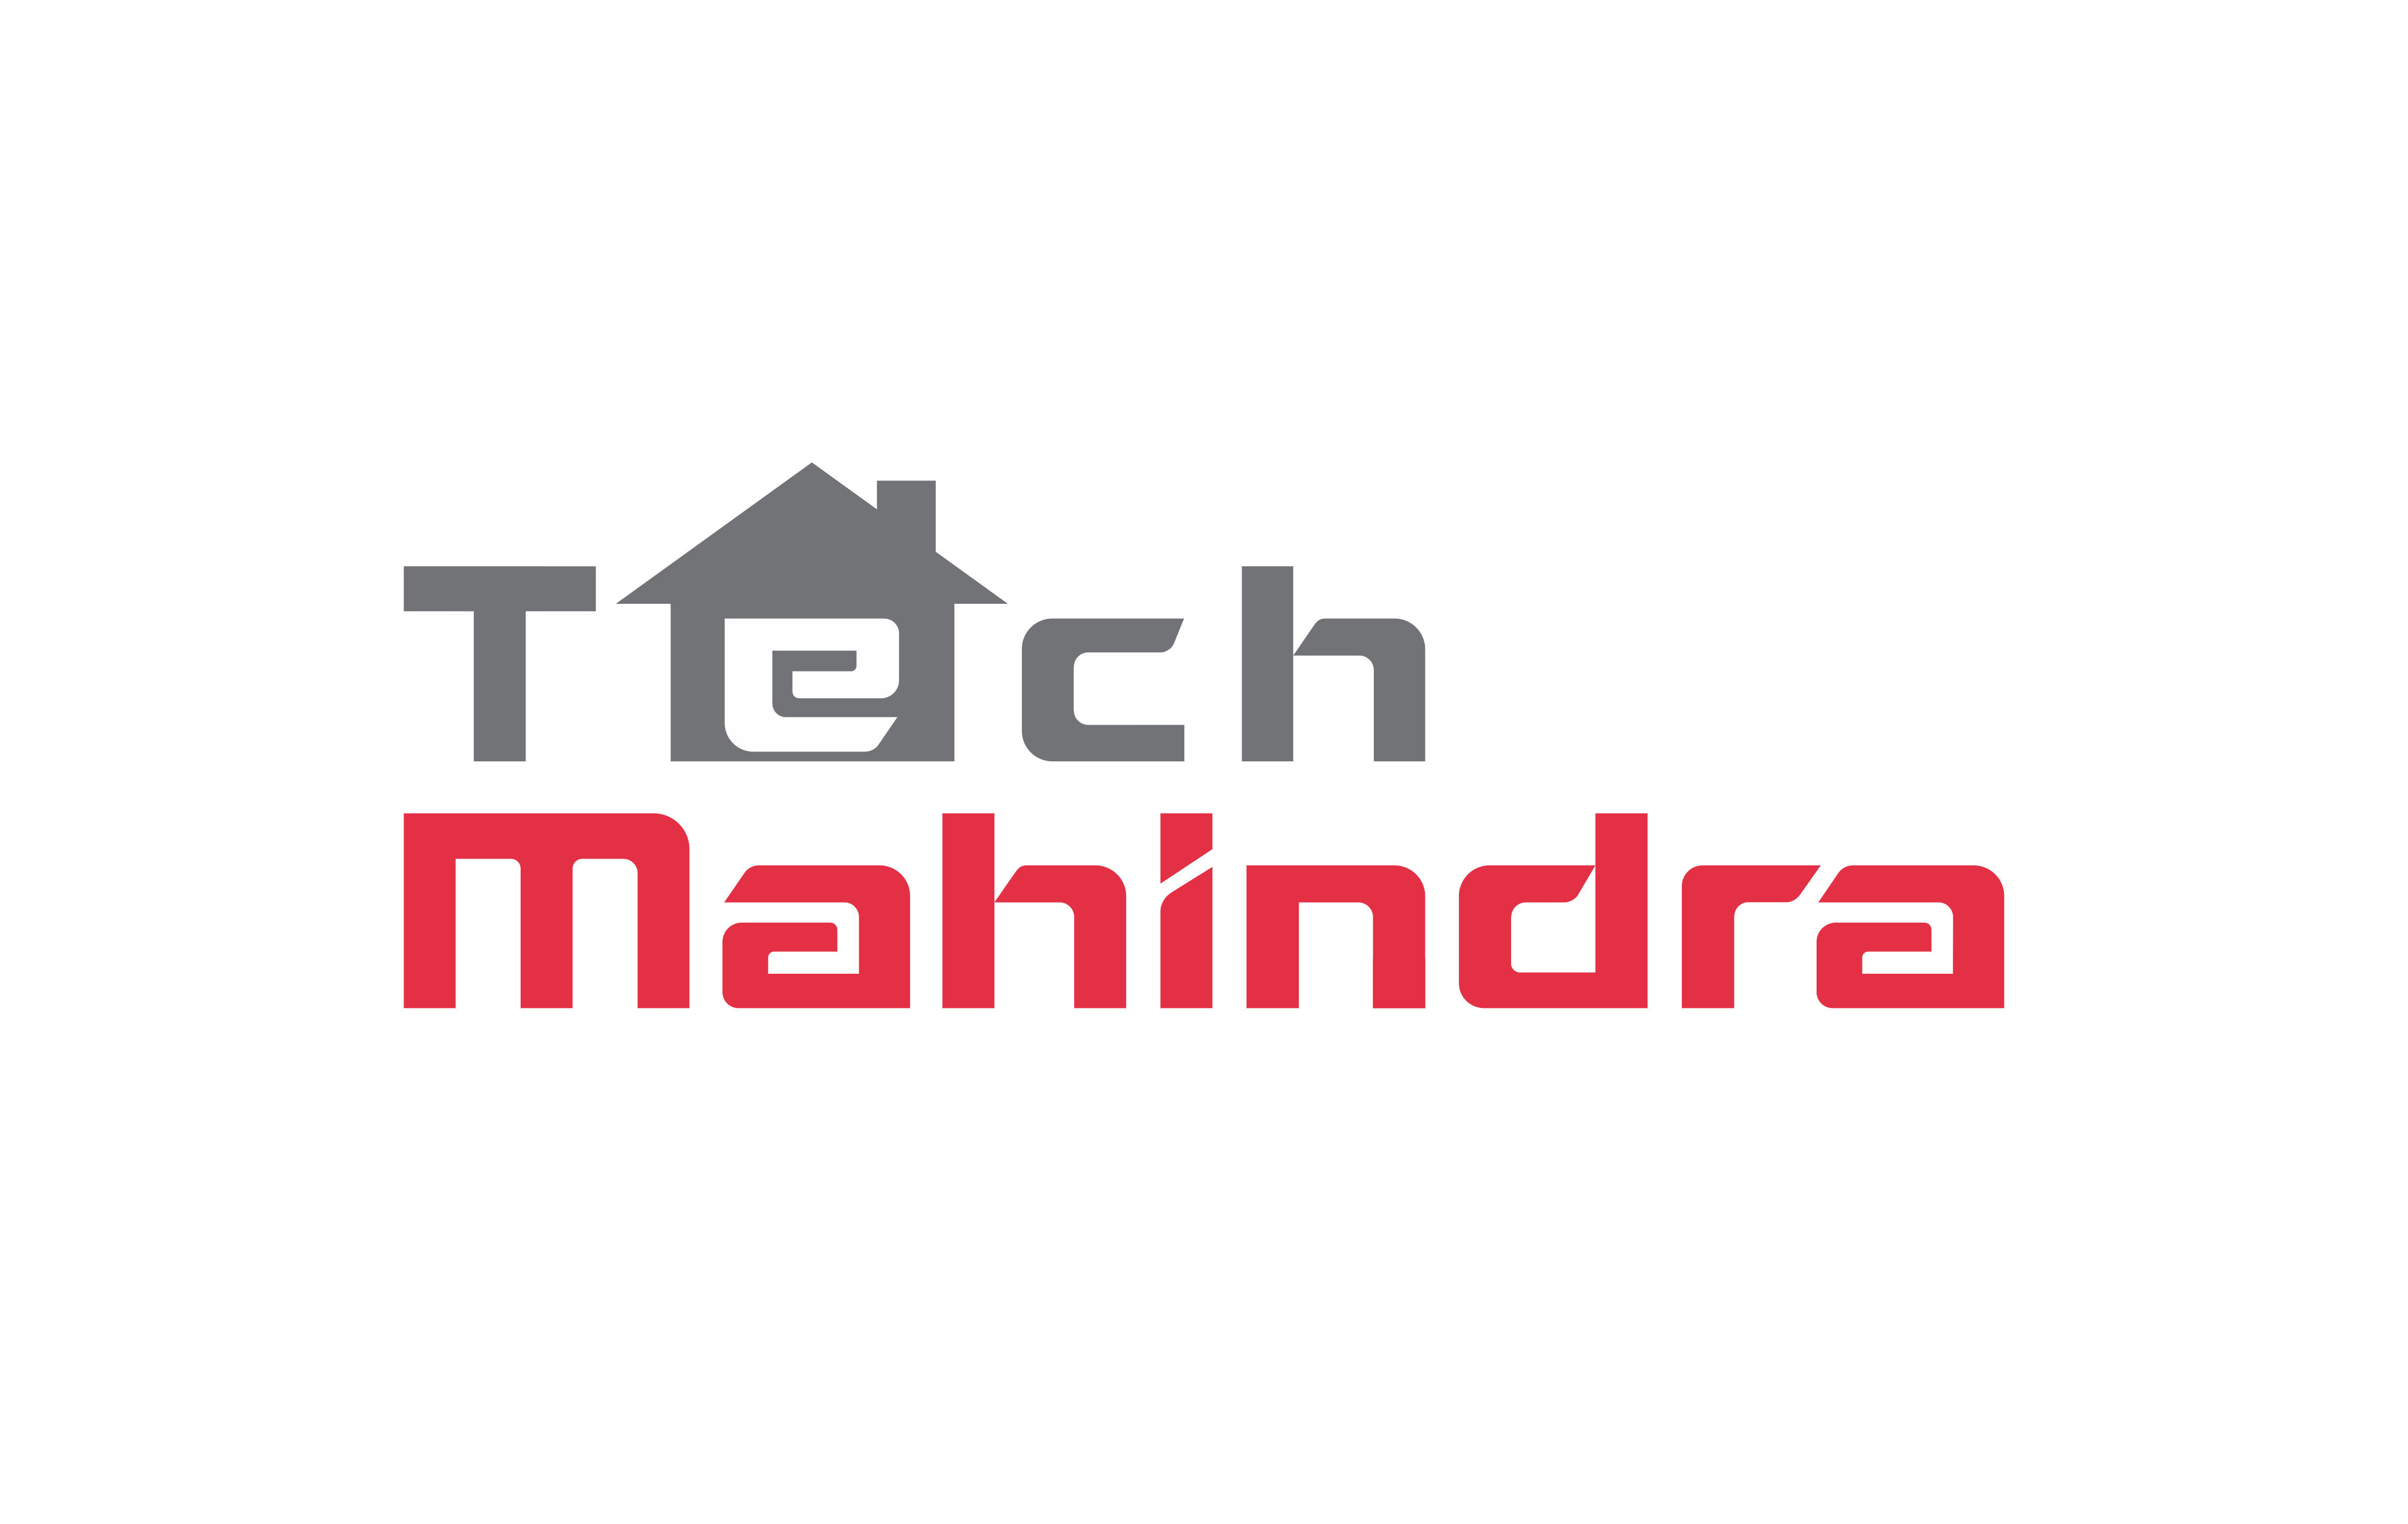 Tech Mahindra Announces Launch of WORKSPACE NXT – Integrated Digital Workplace Solution for Enterprises Globally